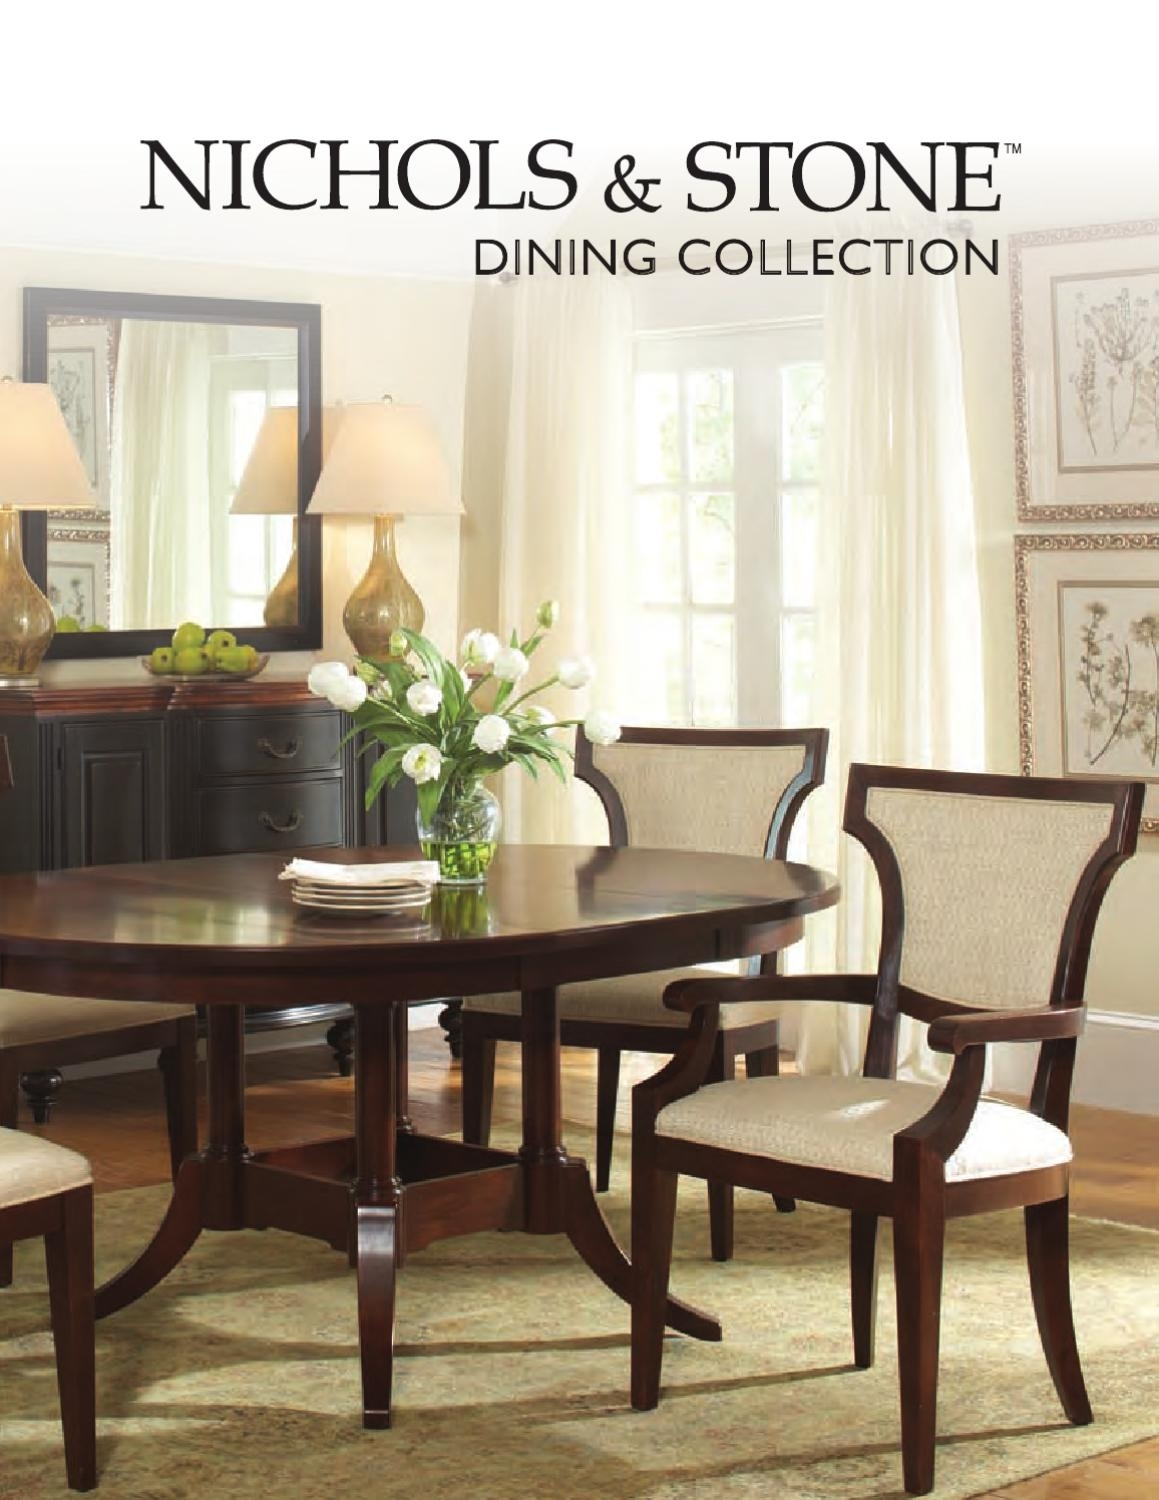 Dining Collectionnichols & Stonestickley – Issuu Regarding Most Popular Walden Extension Dining Tables (Image 4 of 20)